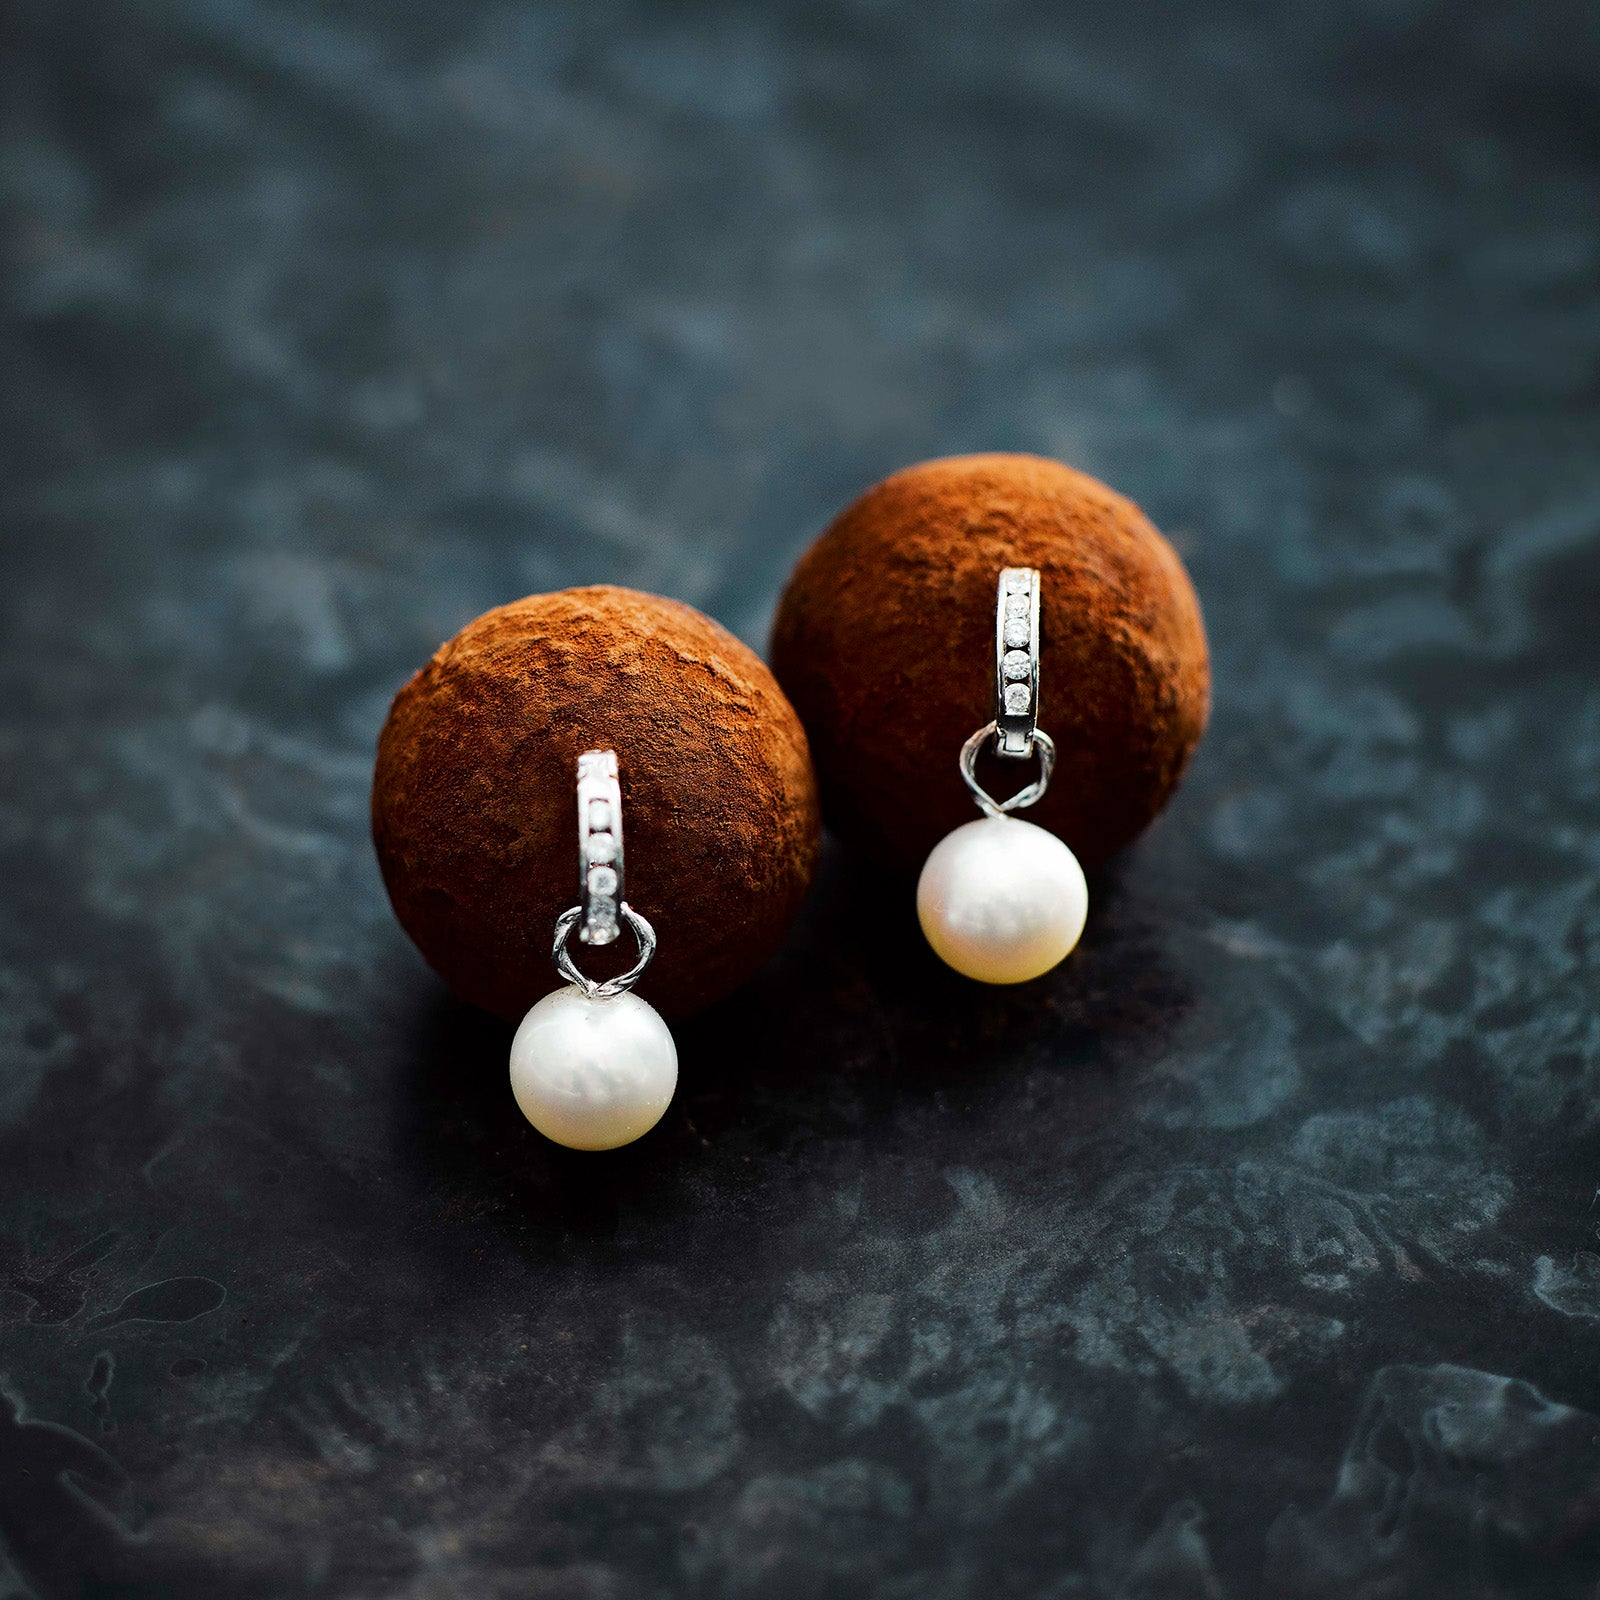 Bespoke pearl earrings for christmas